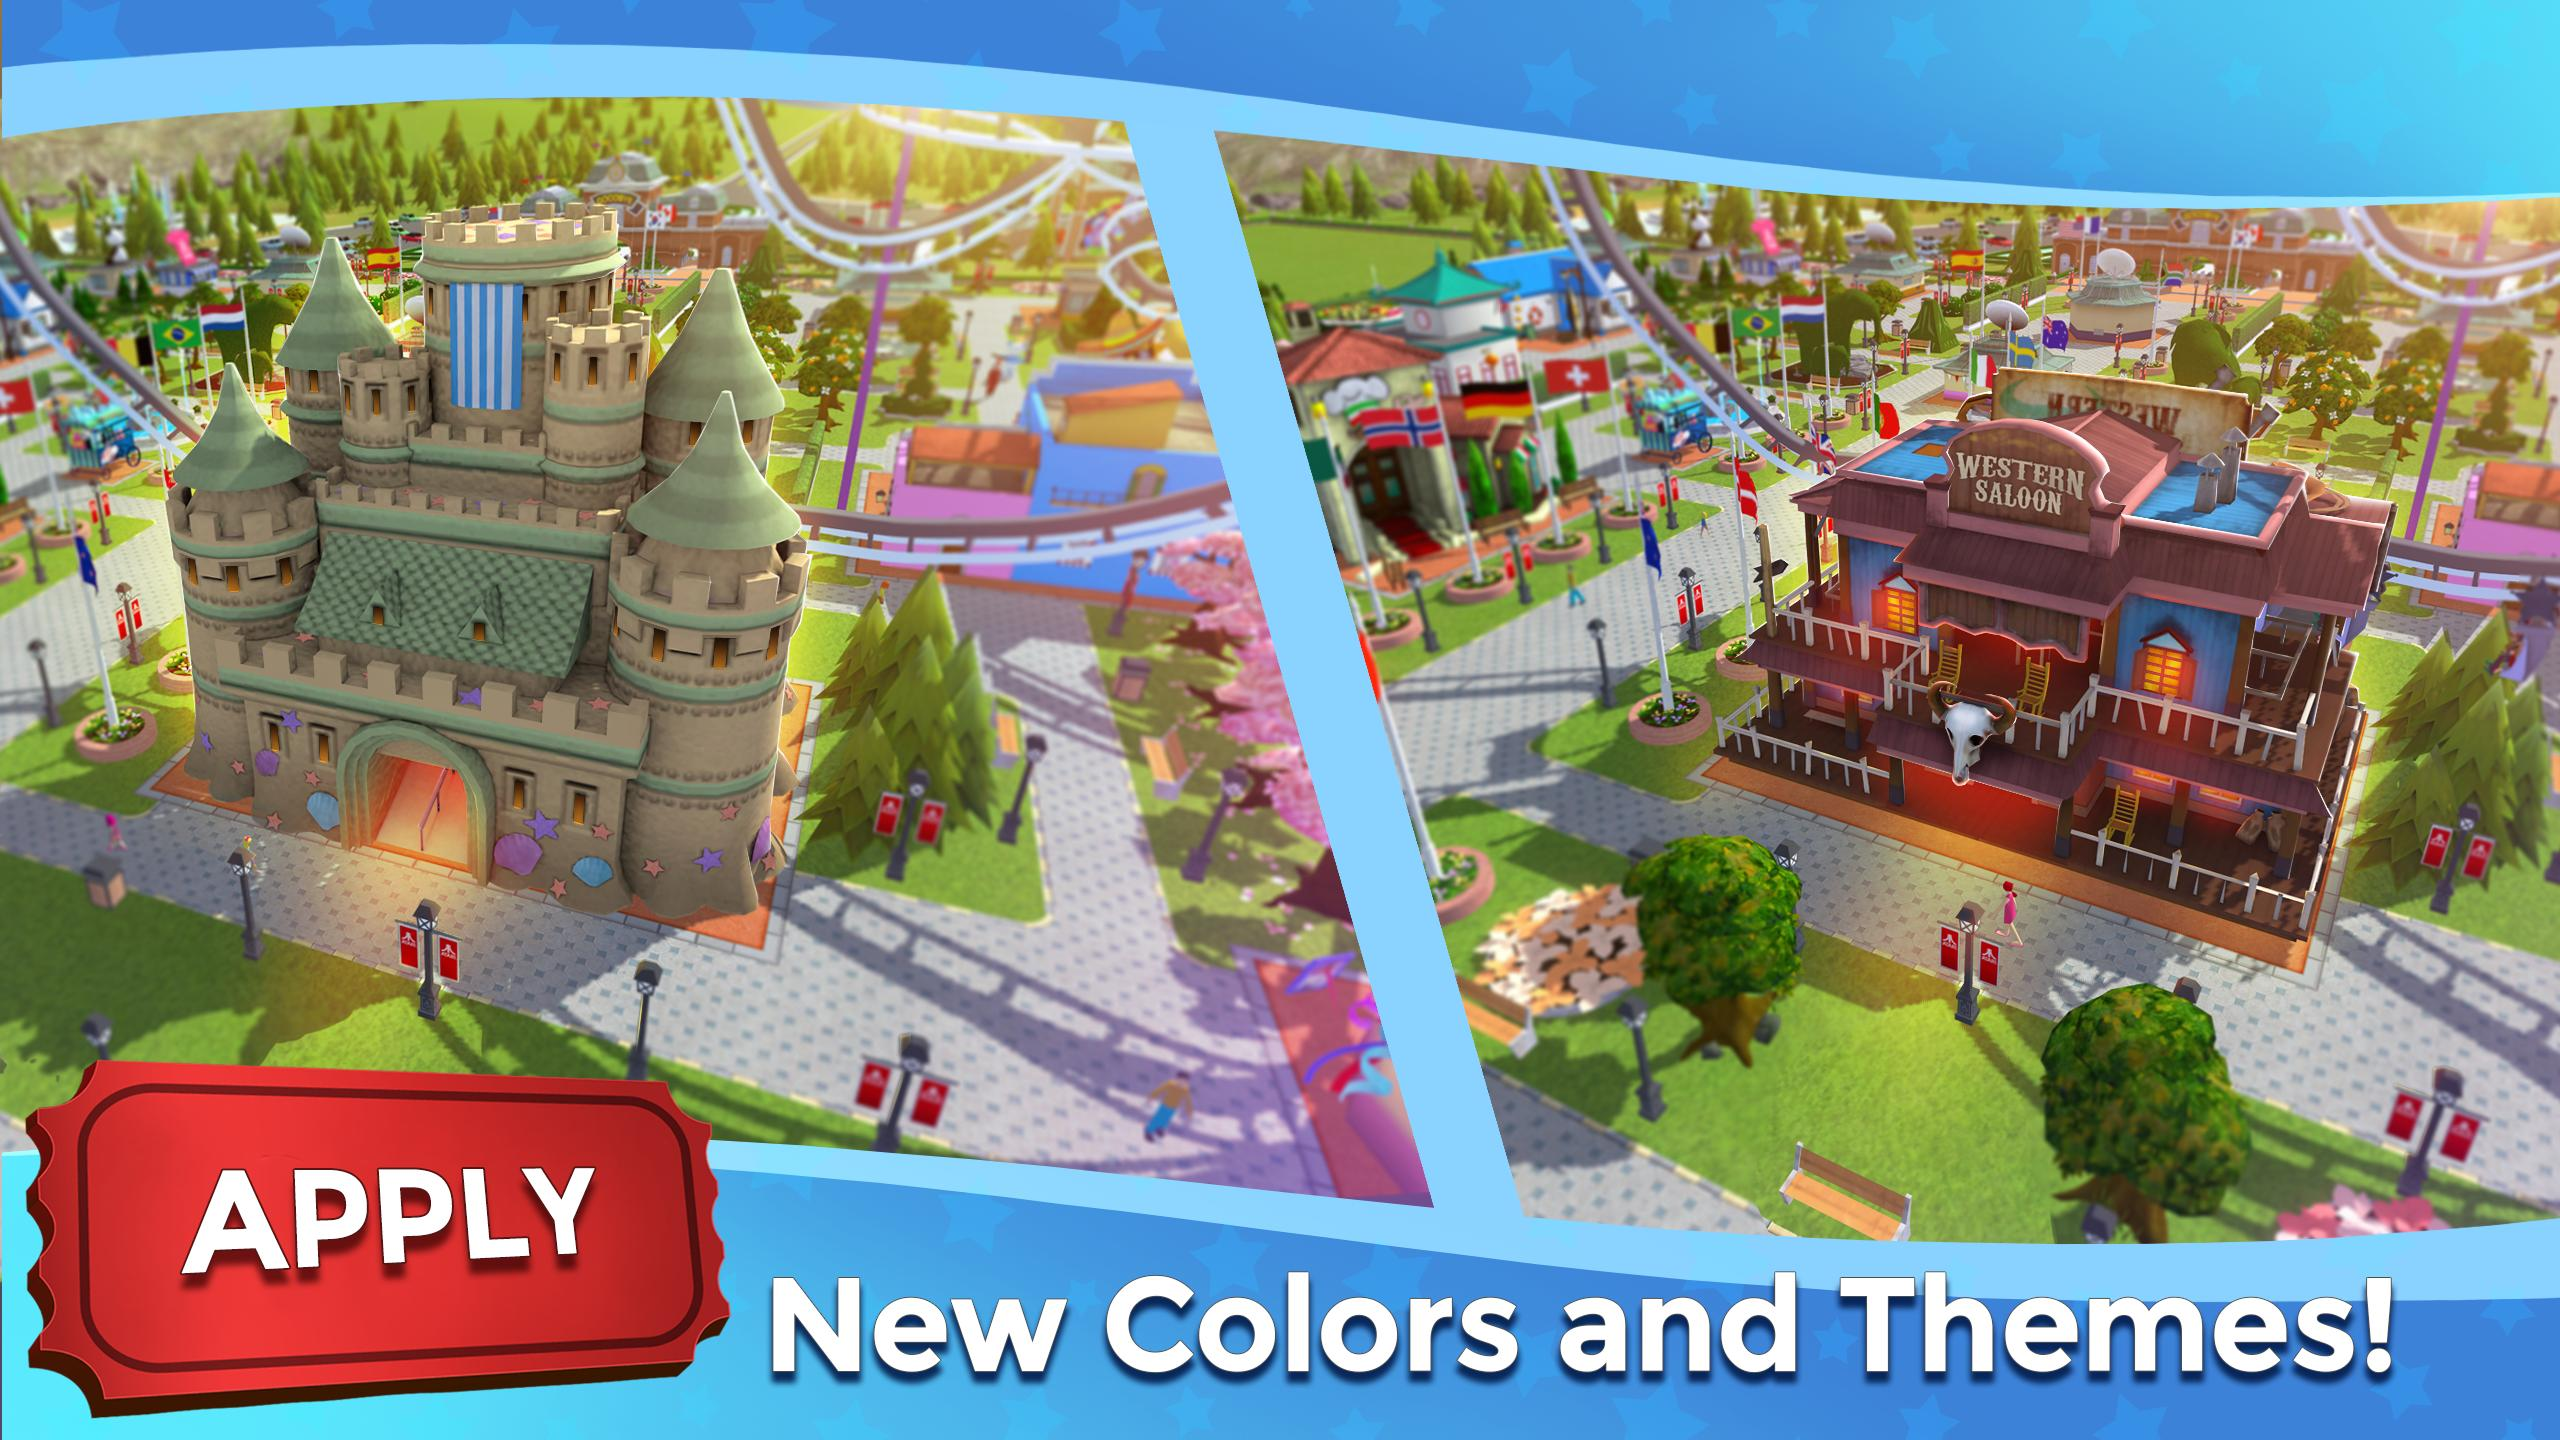 RollerCoaster Tycoon Touch - Build your Theme Park 3.5.0 Screenshot 13